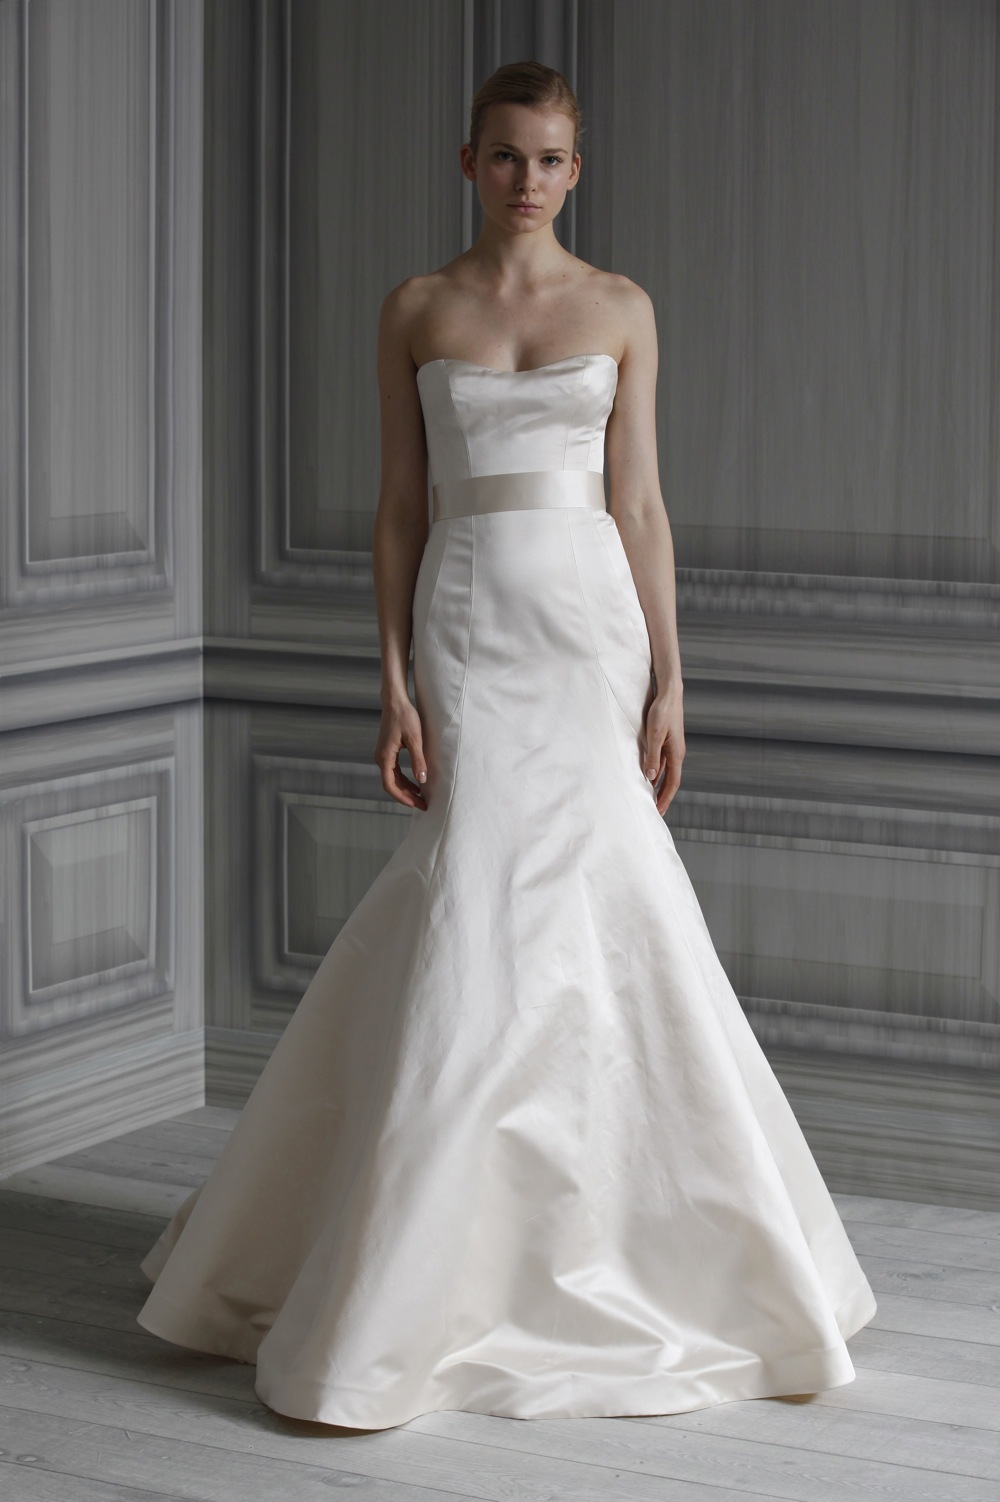 Wedding-dress-monique-lhuillier-bridal-gowns-spring-2012-simplicity.full